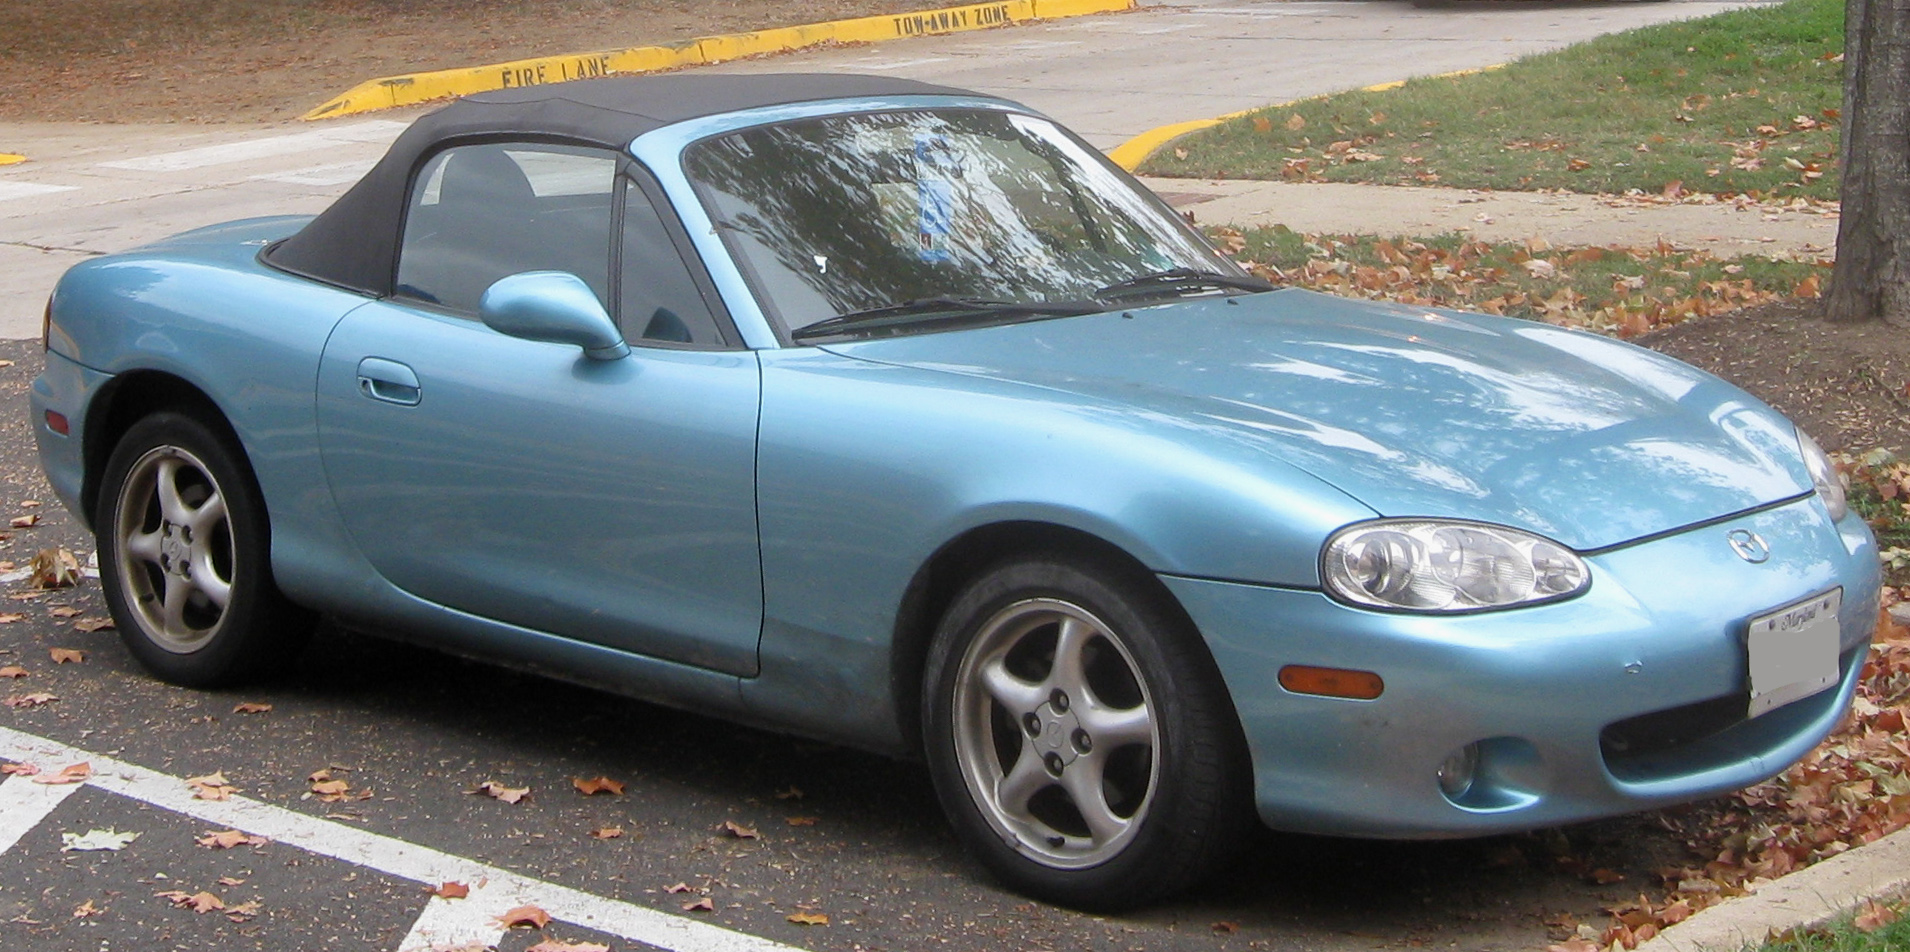 File:2nd Mazda MX-5 Miata.jpg